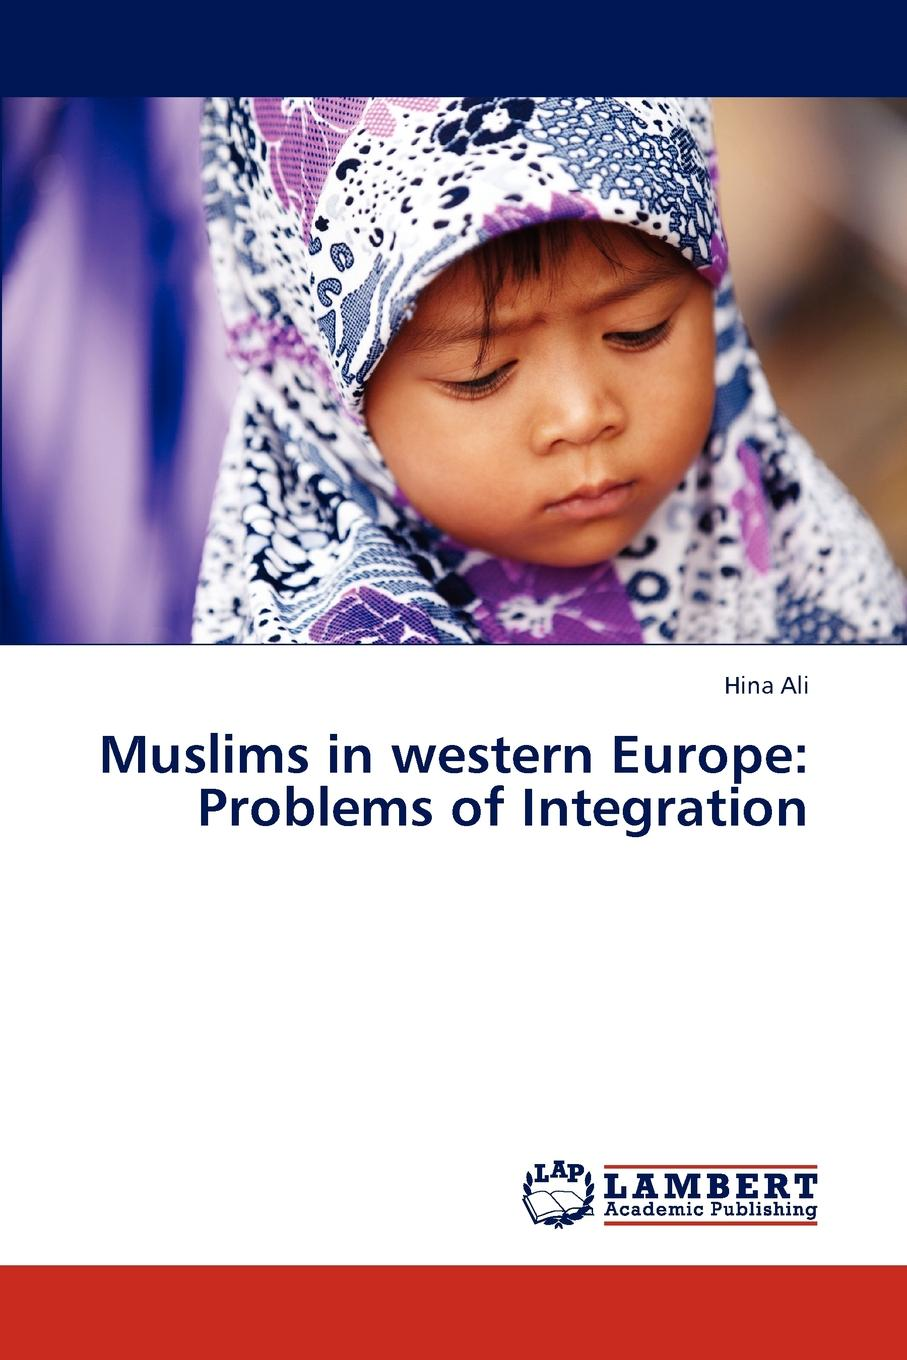 Ali Hina Muslims in western Europe. Problems of Integration